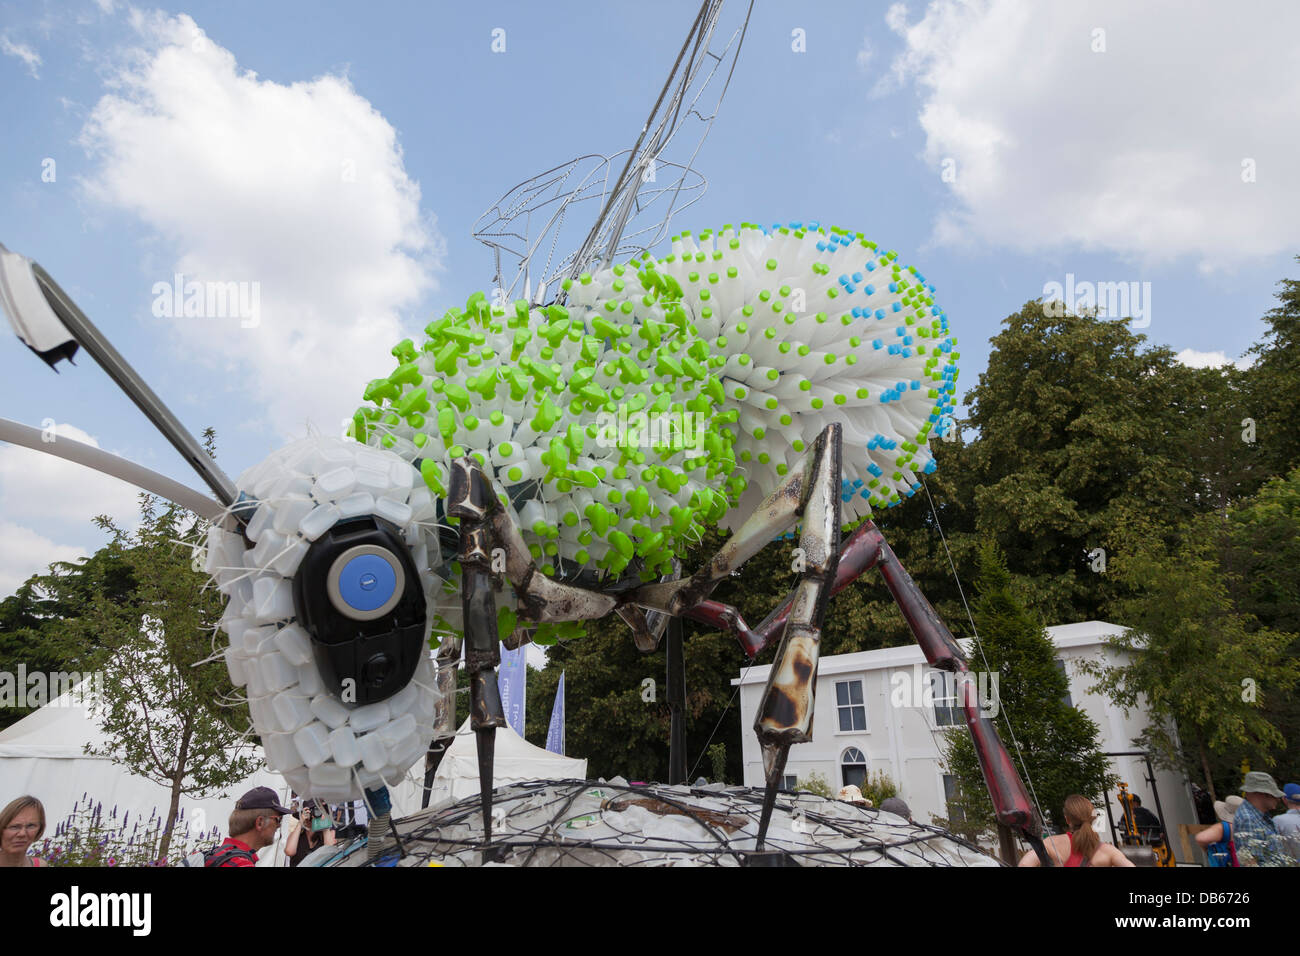 Bee Clever by Ptolemy Elrington for Ecover at Hampton Court Flower Show 2013 - Stock Image